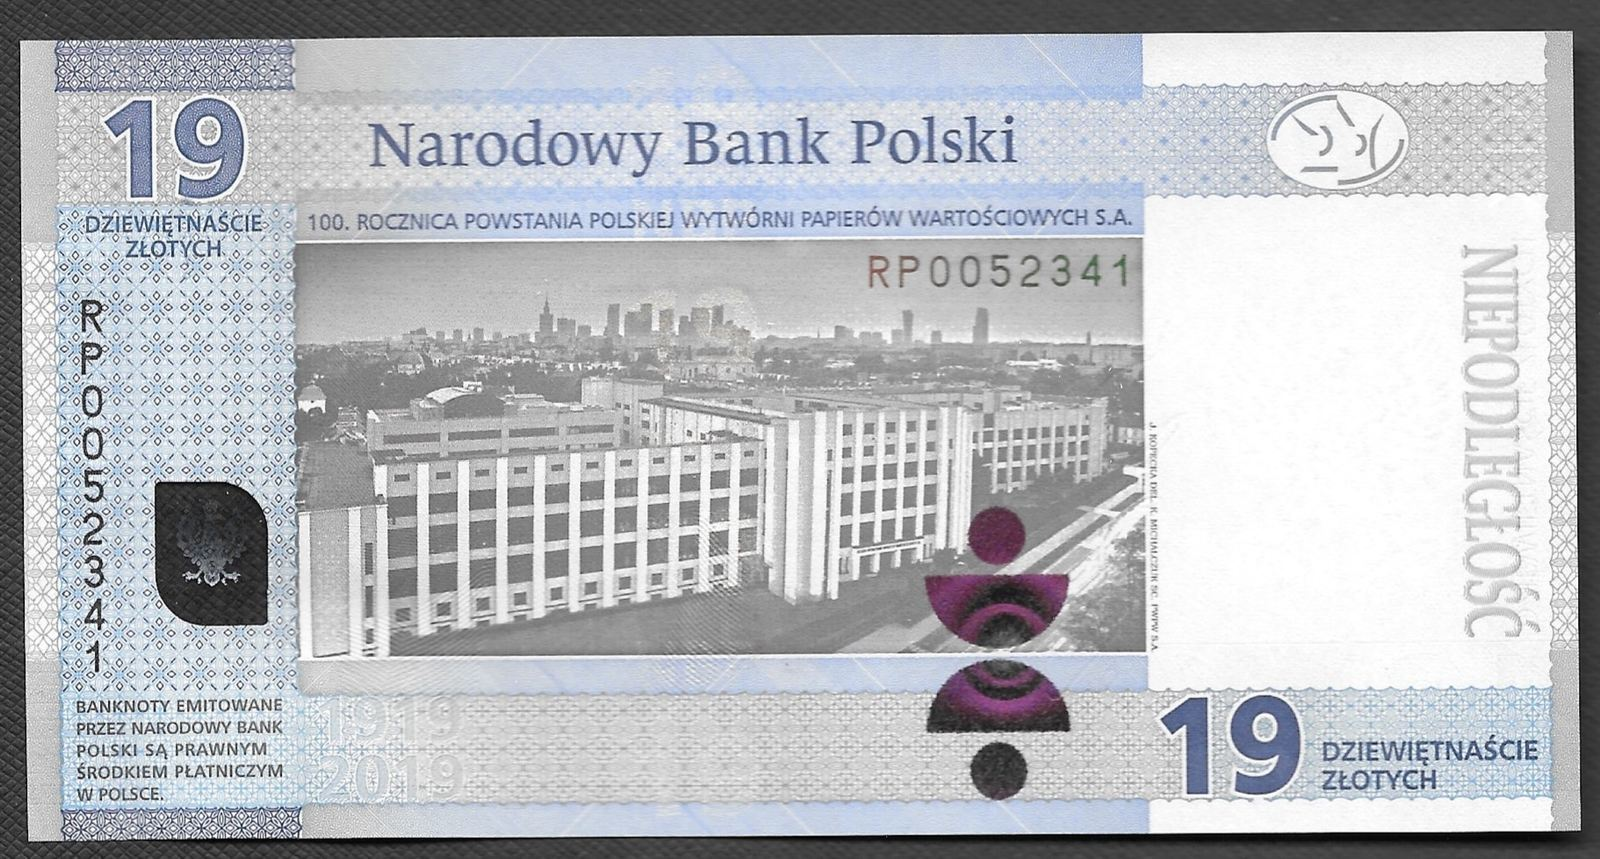 19 zlotych 100 TH ANNIVERSARY OF THE POLISH SECURITY PRINTING WORKS P-NEW